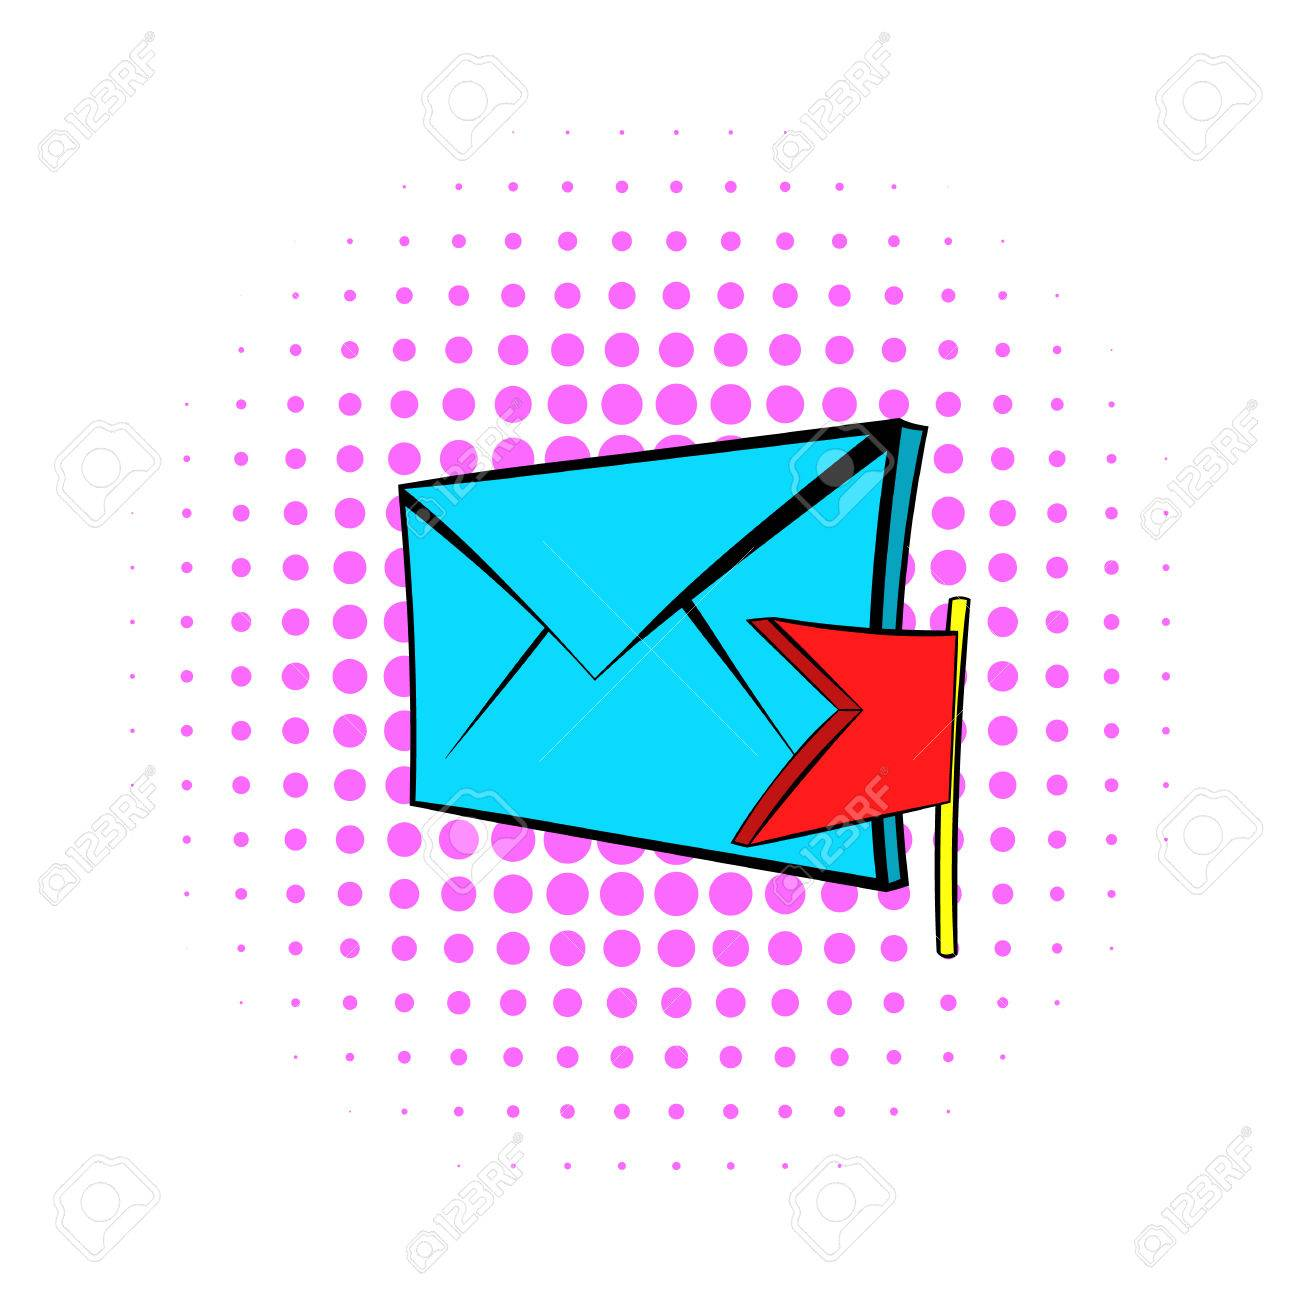 Flag e mail icon in pop art style on dotted background internet flag e mail icon in pop art style on dotted background internet and biocorpaavc